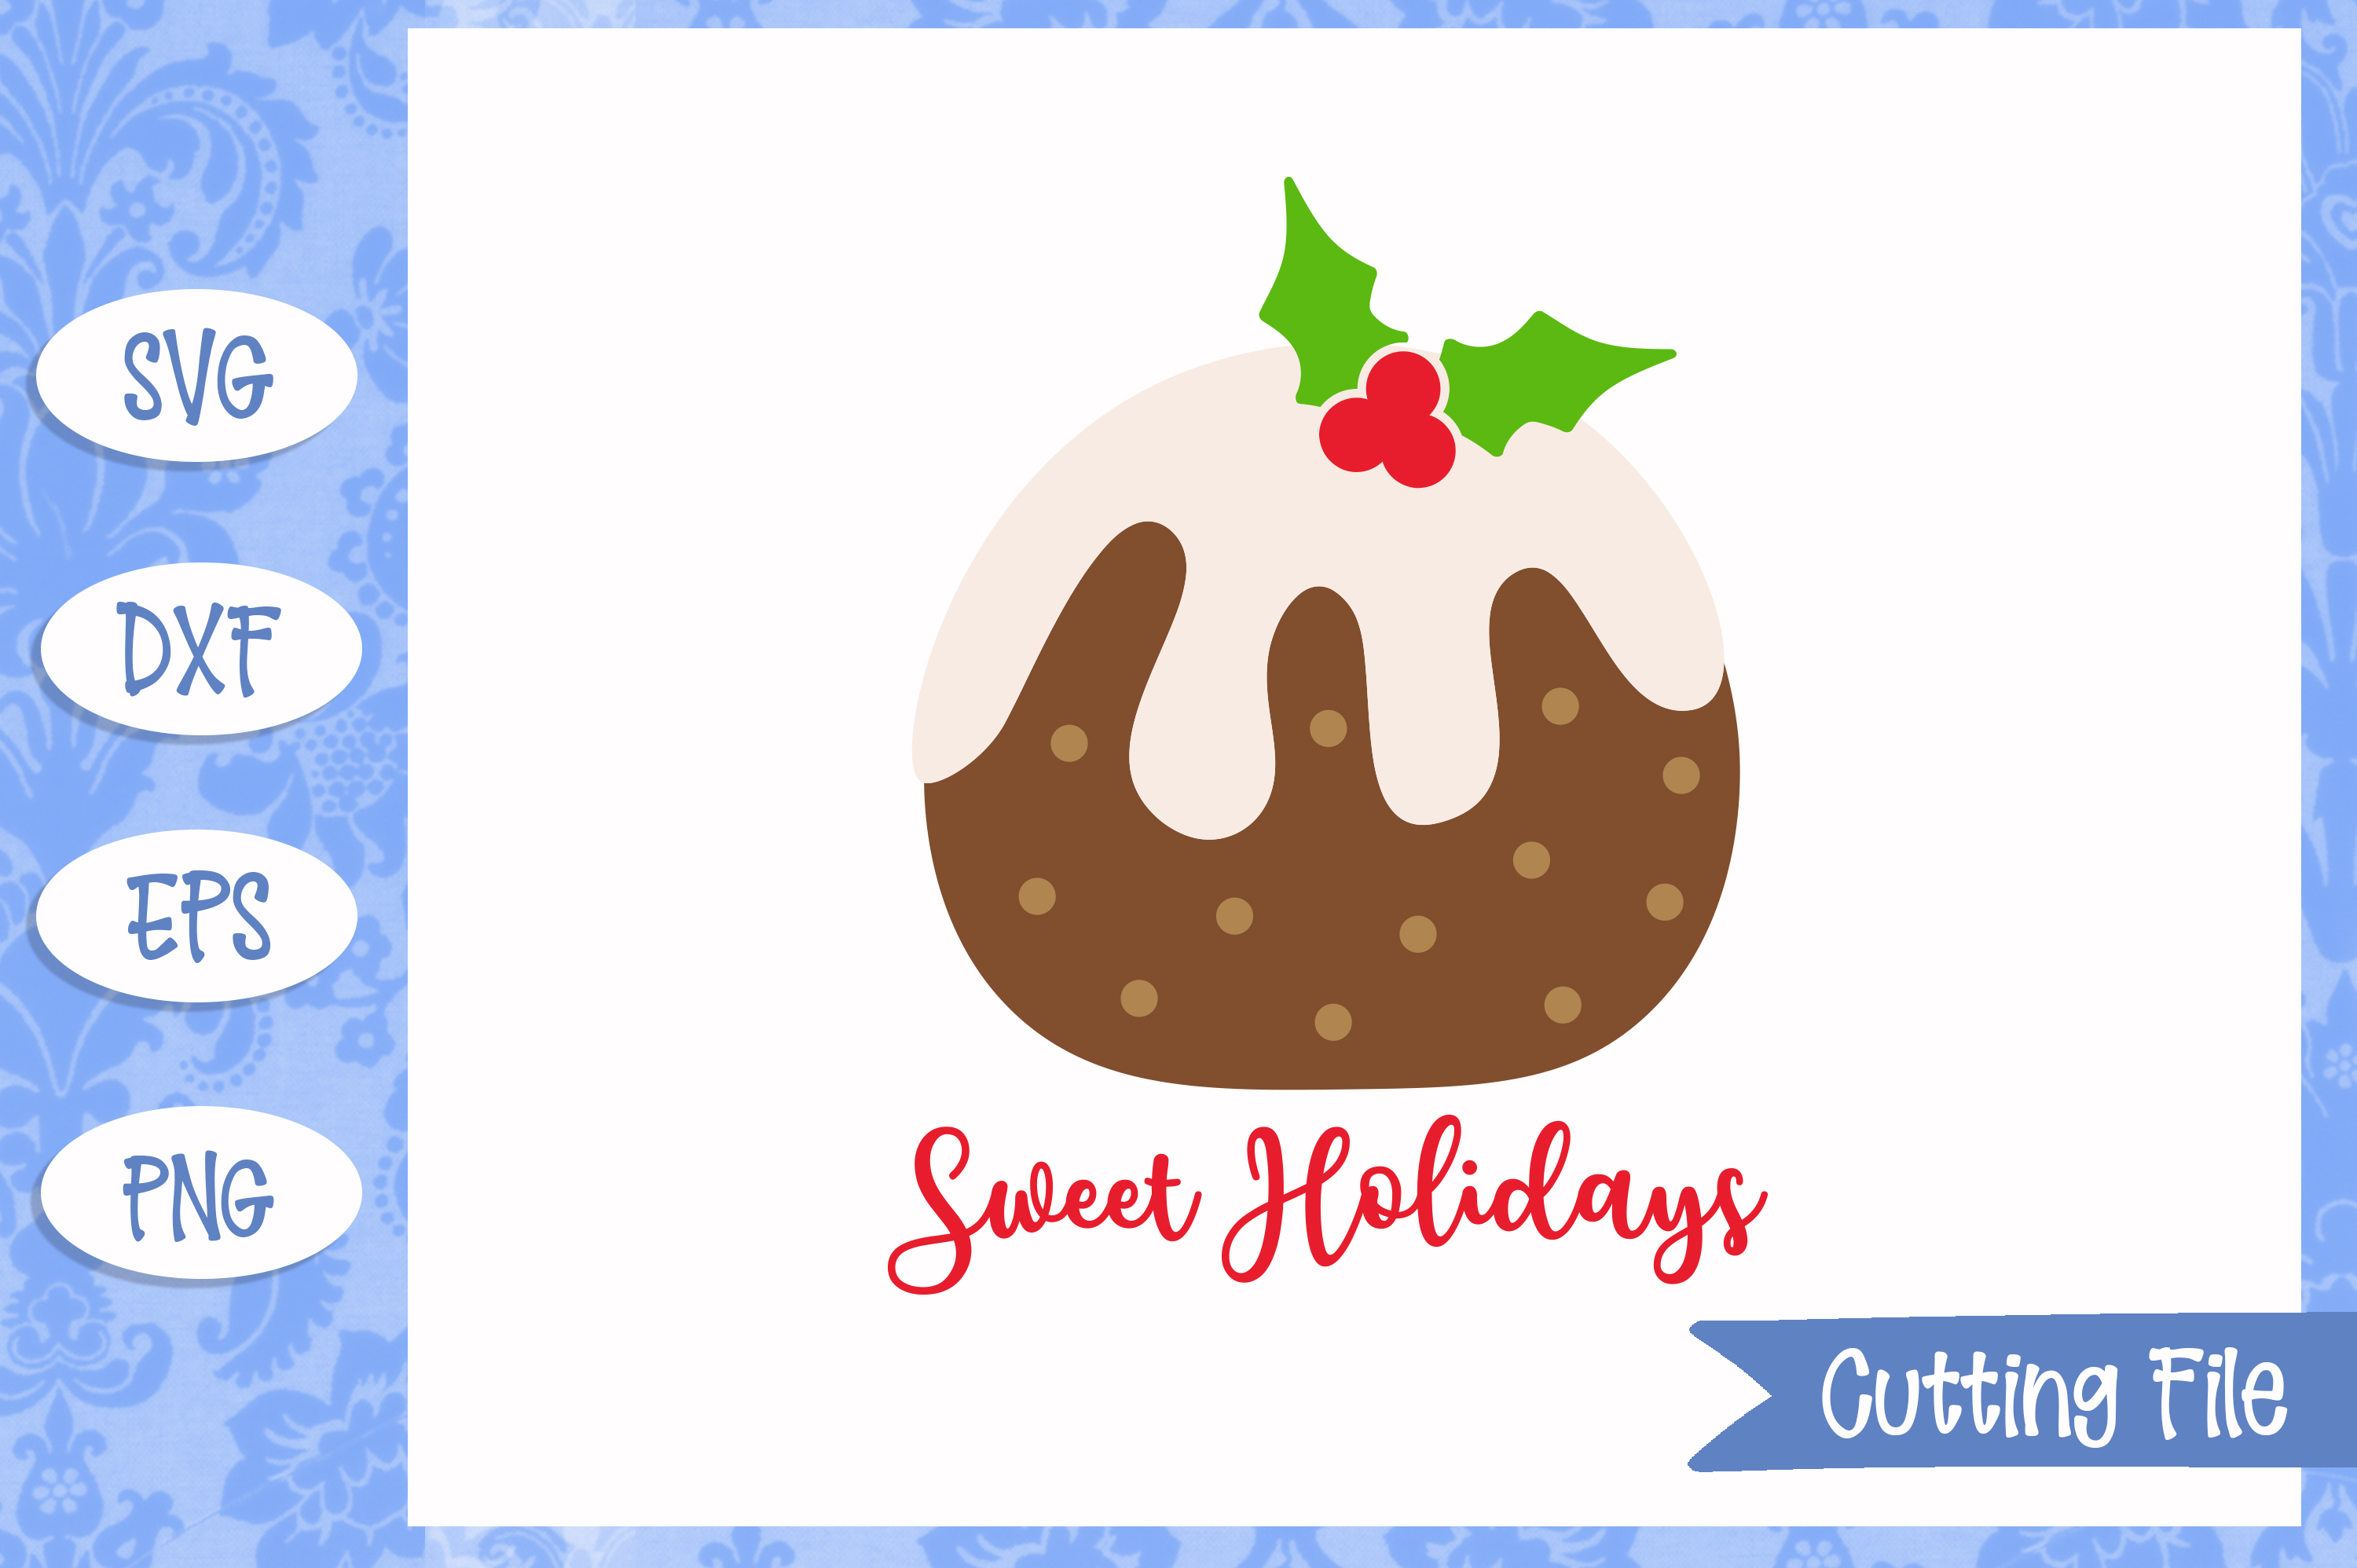 Sweet Holidays Christmas Pudding Cut File example image 1